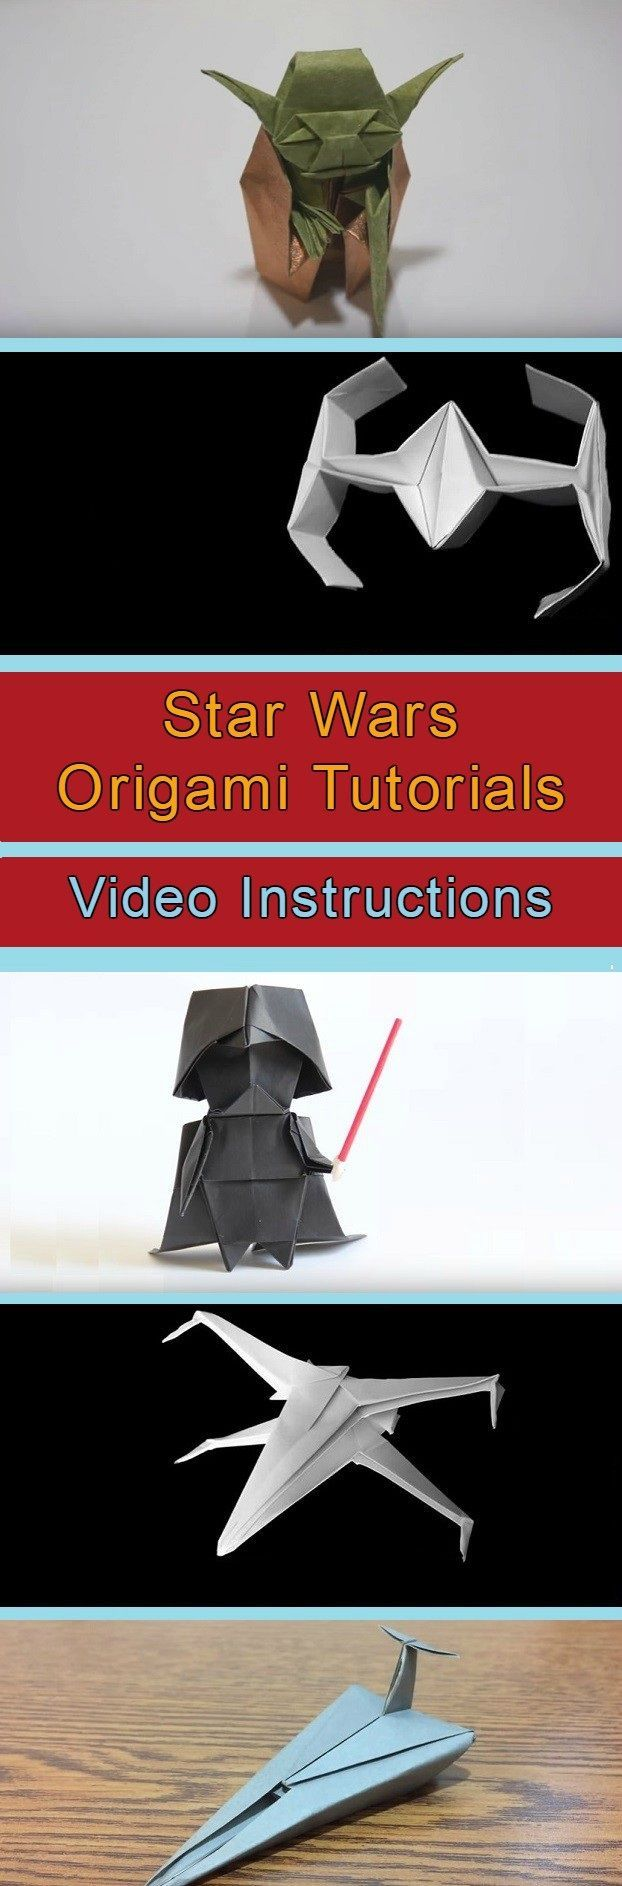 Star Wars Origami Tutorials Video Instructions - right up my son's alley!